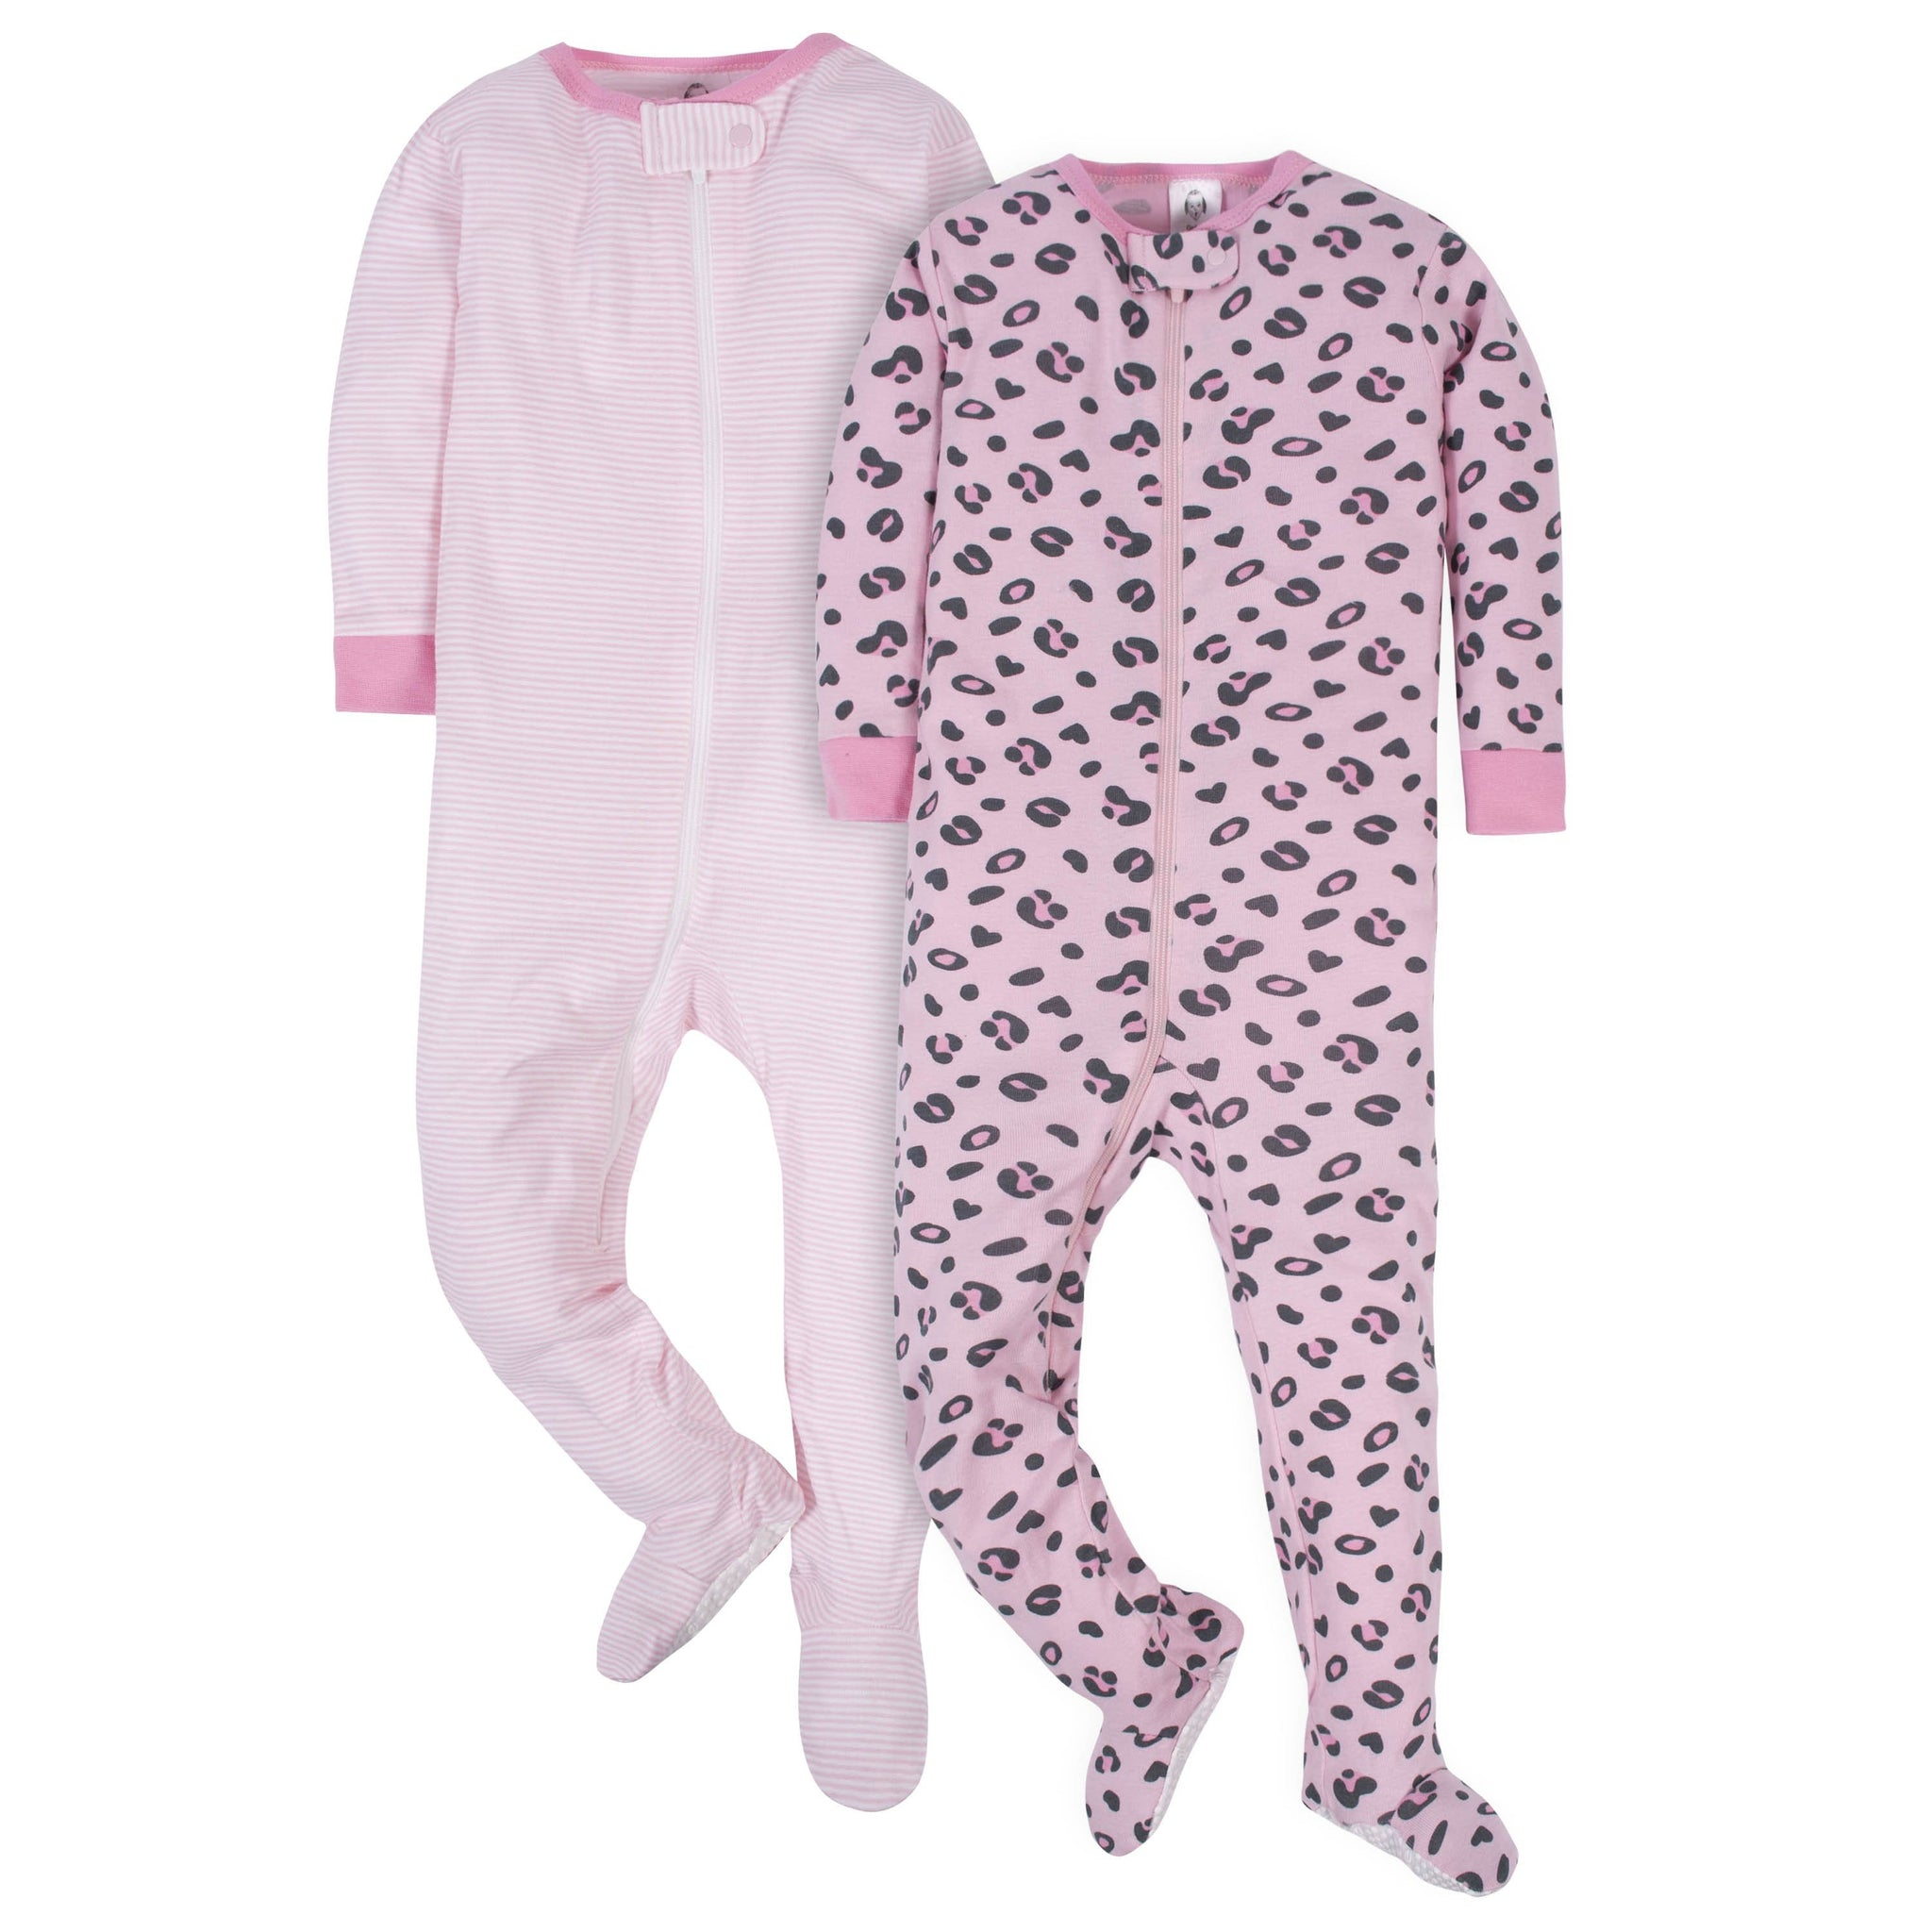 2-Pack Baby Girls Footed Union Suits - Leopard